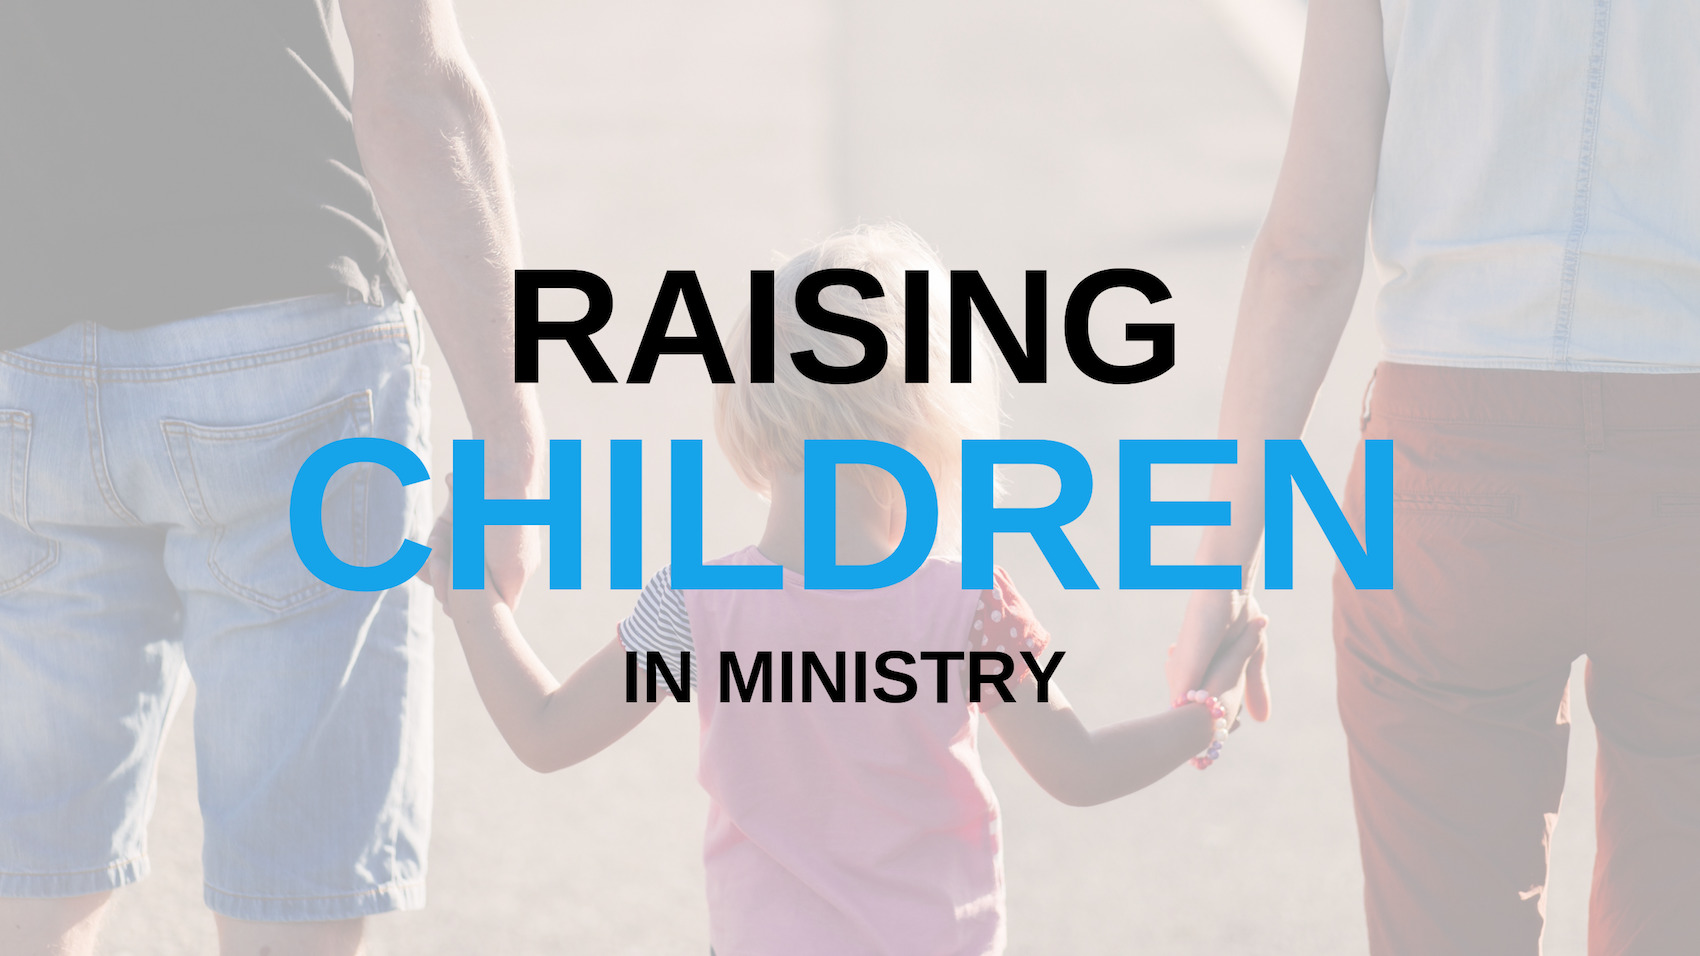 Raising Children in Ministry